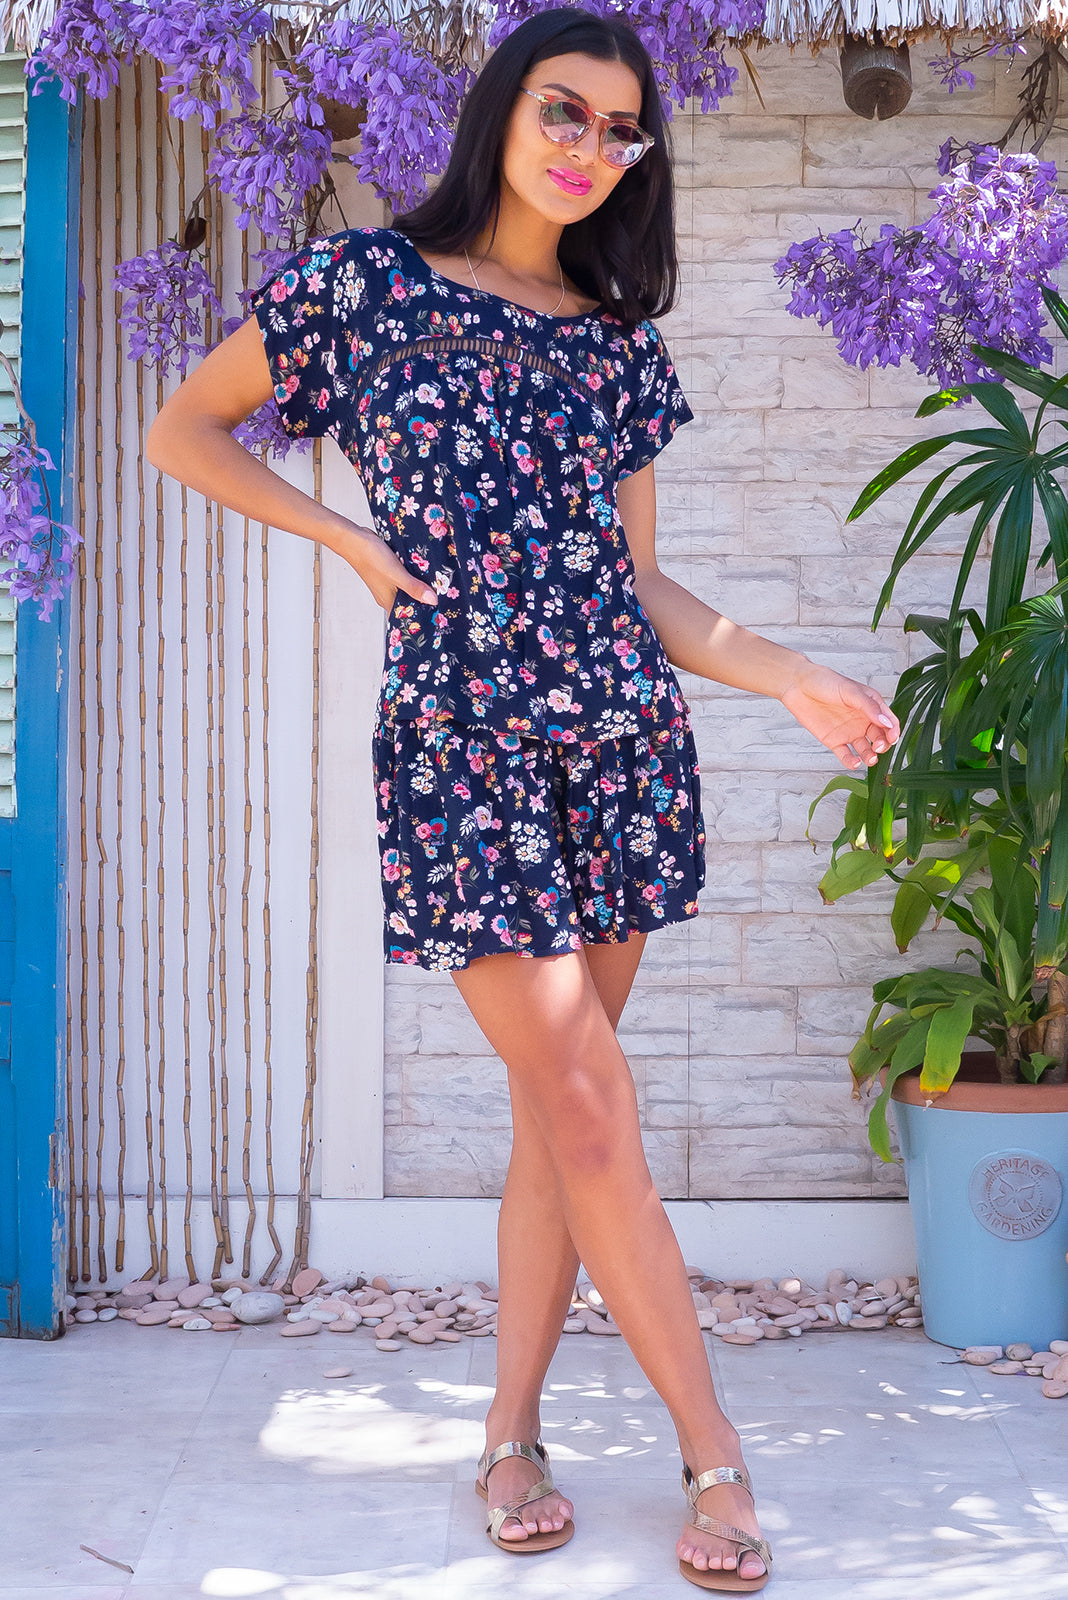 Comfortable pull-on style shorts, the Day Tripper Newport Navy Shorts has elasticated back waistband, flouncy gathers on legs, side pockets and 100% viscose in navy base with cute floral print.